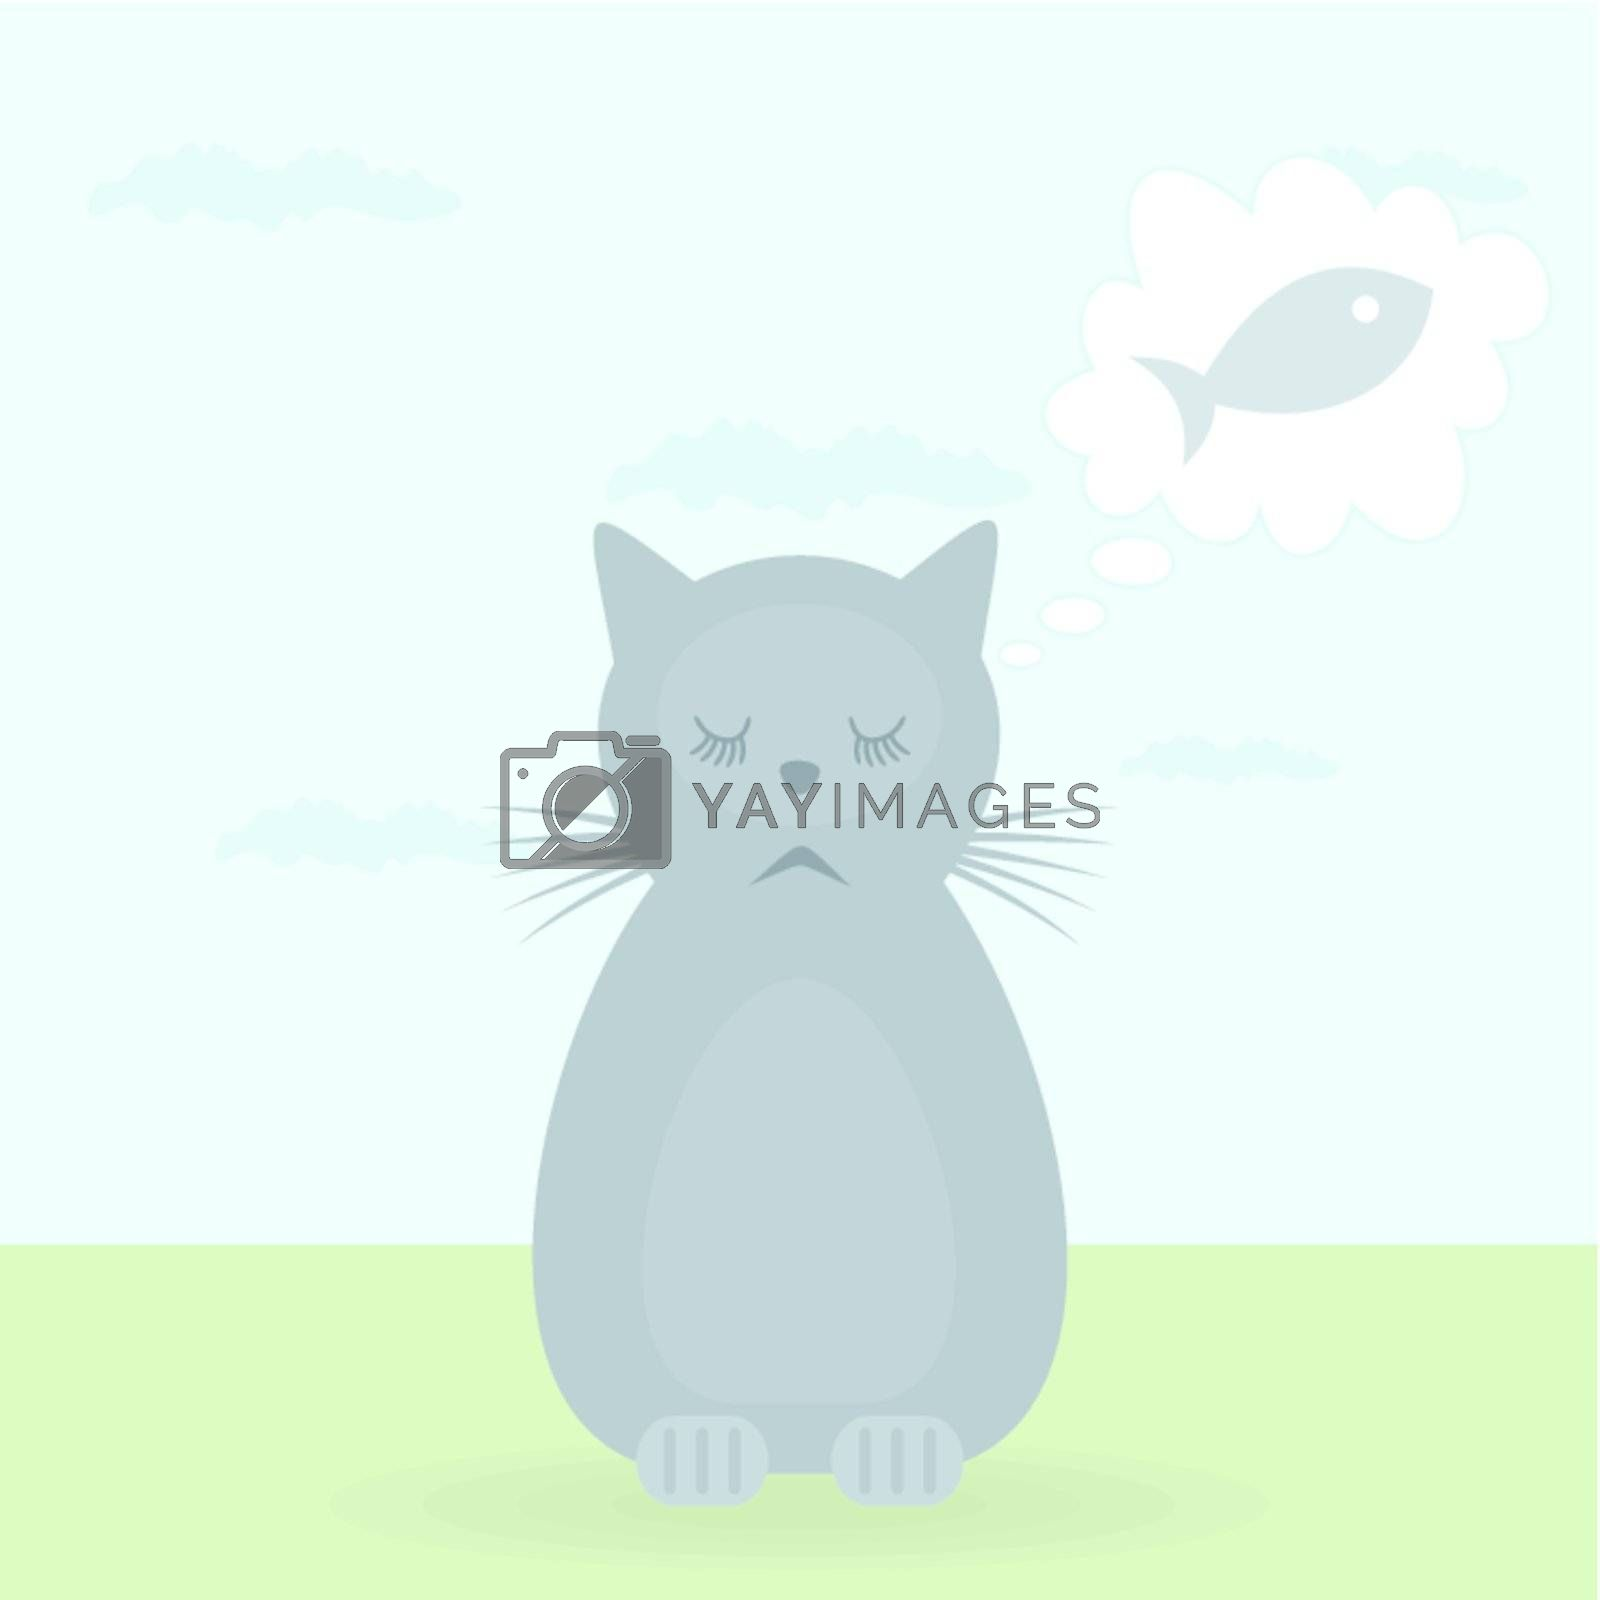 The cat on the nature dreams of fish. A vector illustration